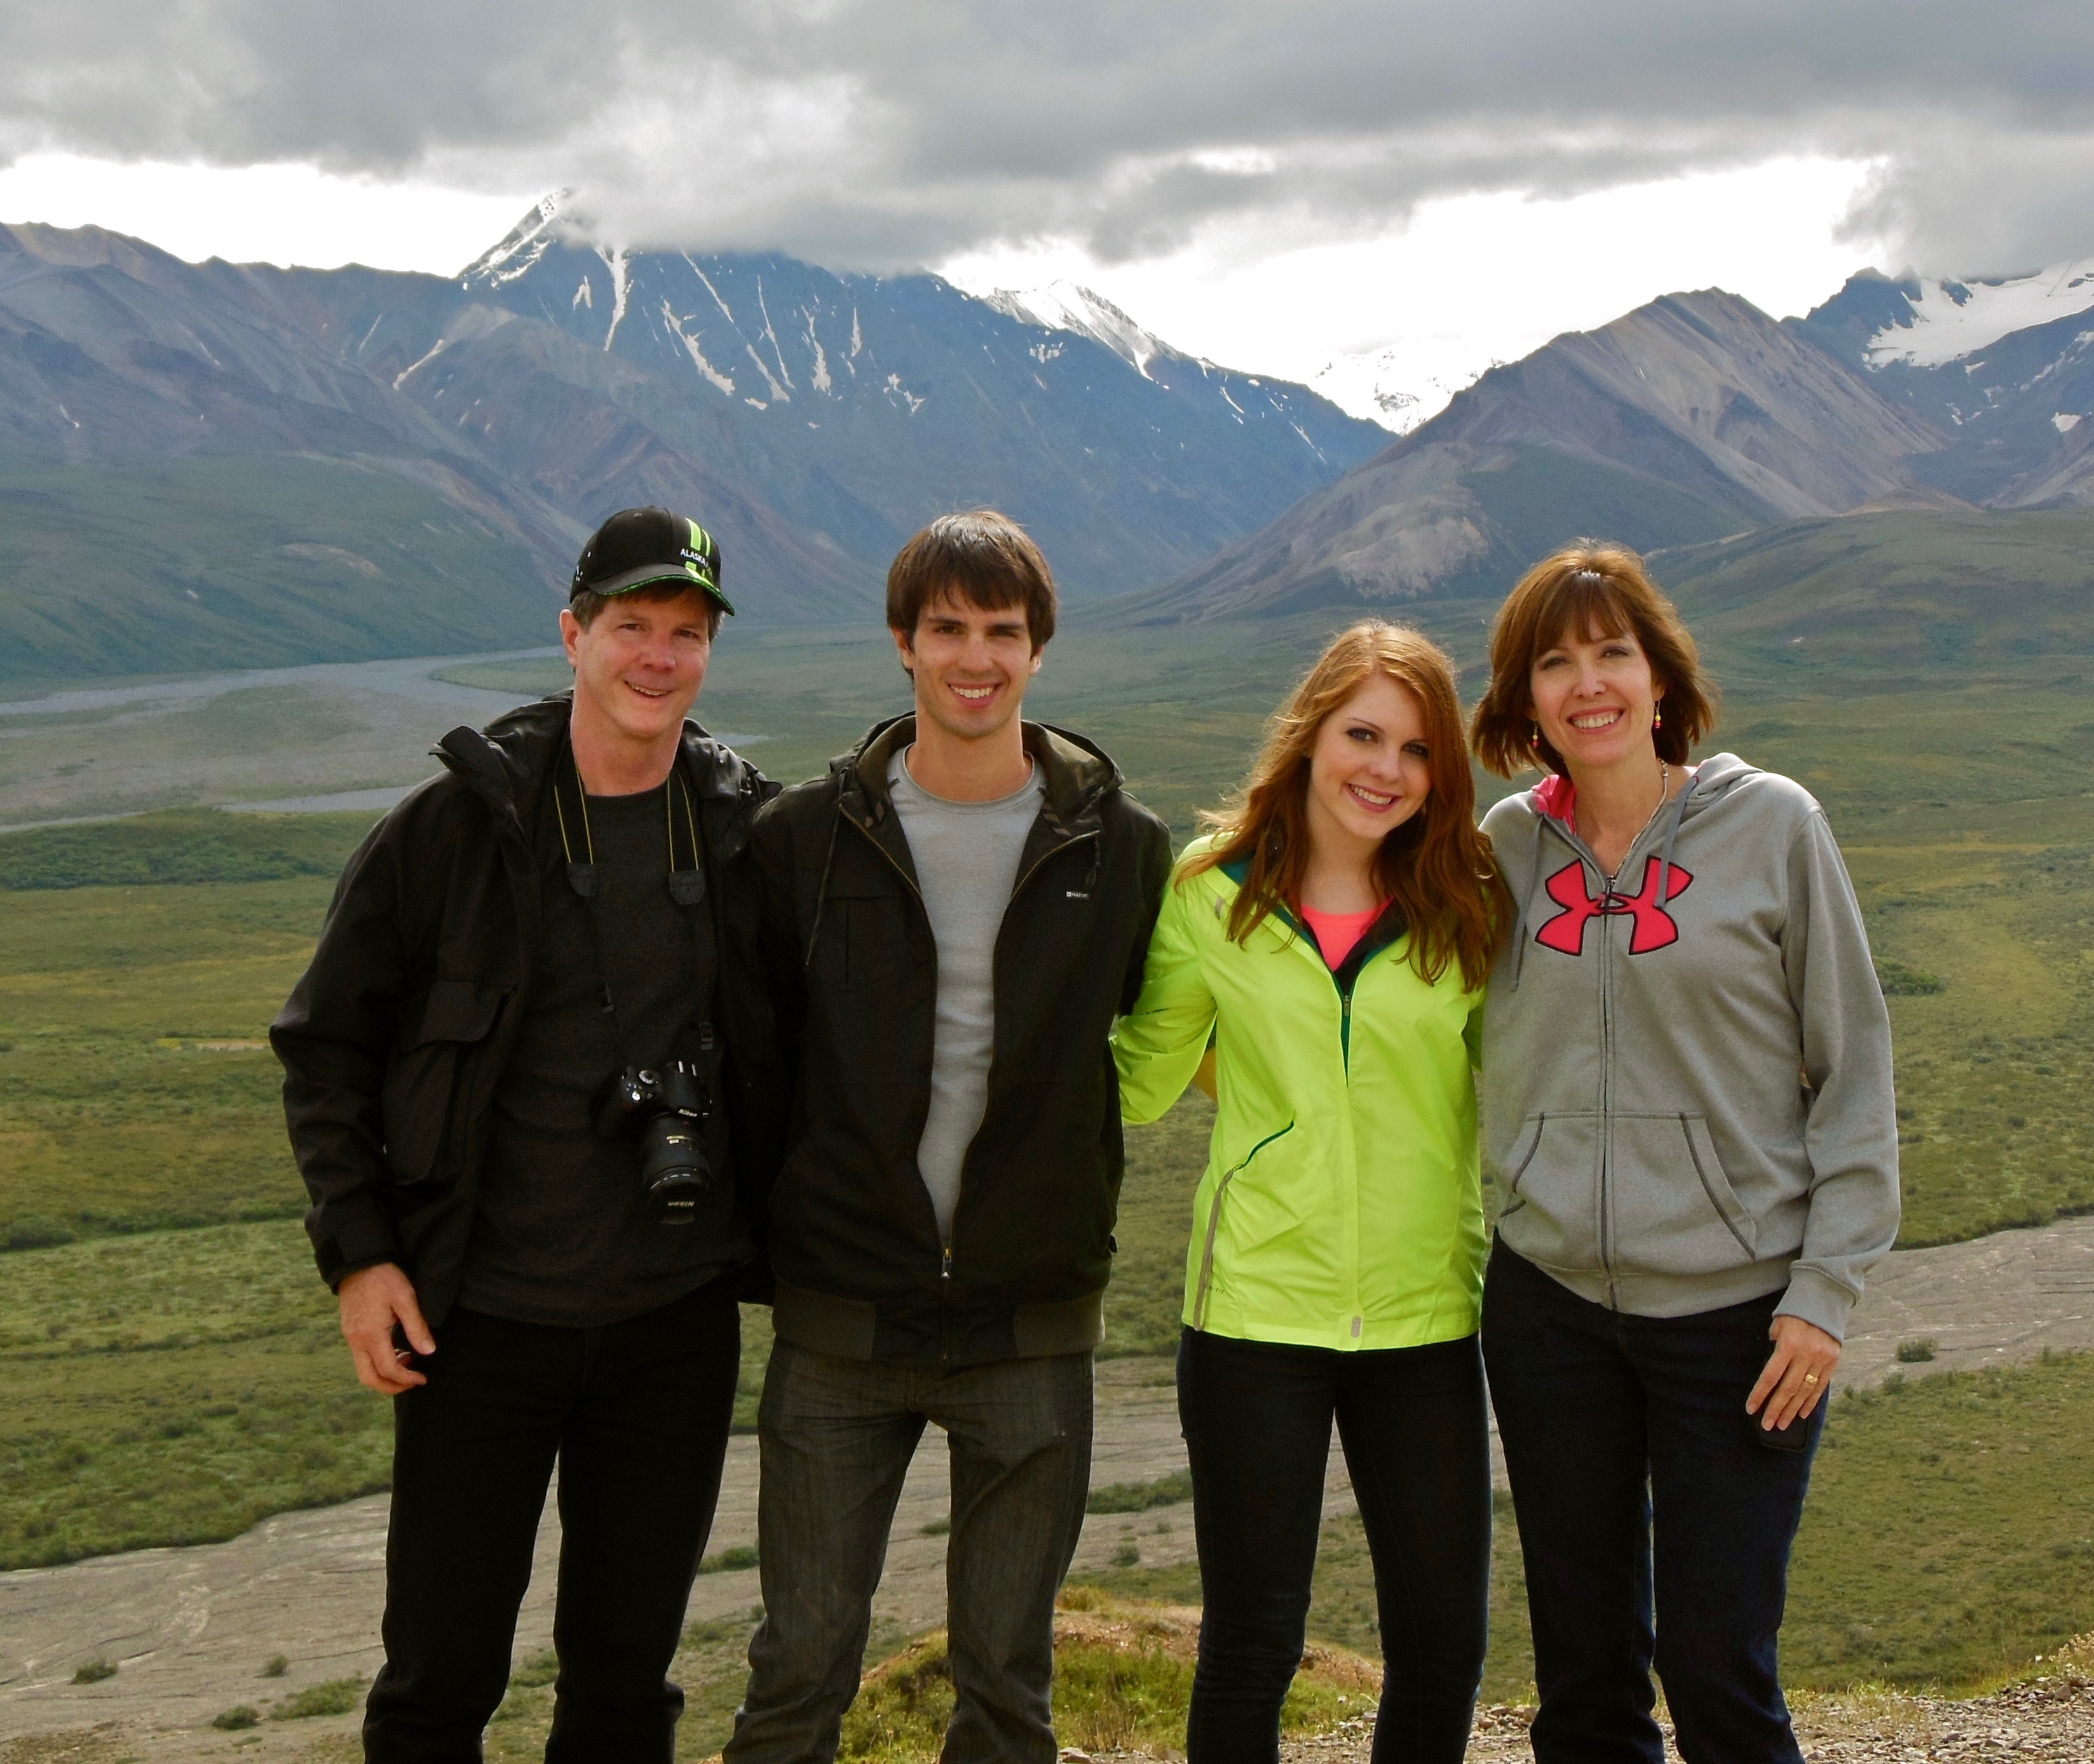 Picture of Pacha family in Alaska to show happy times together before suicide.